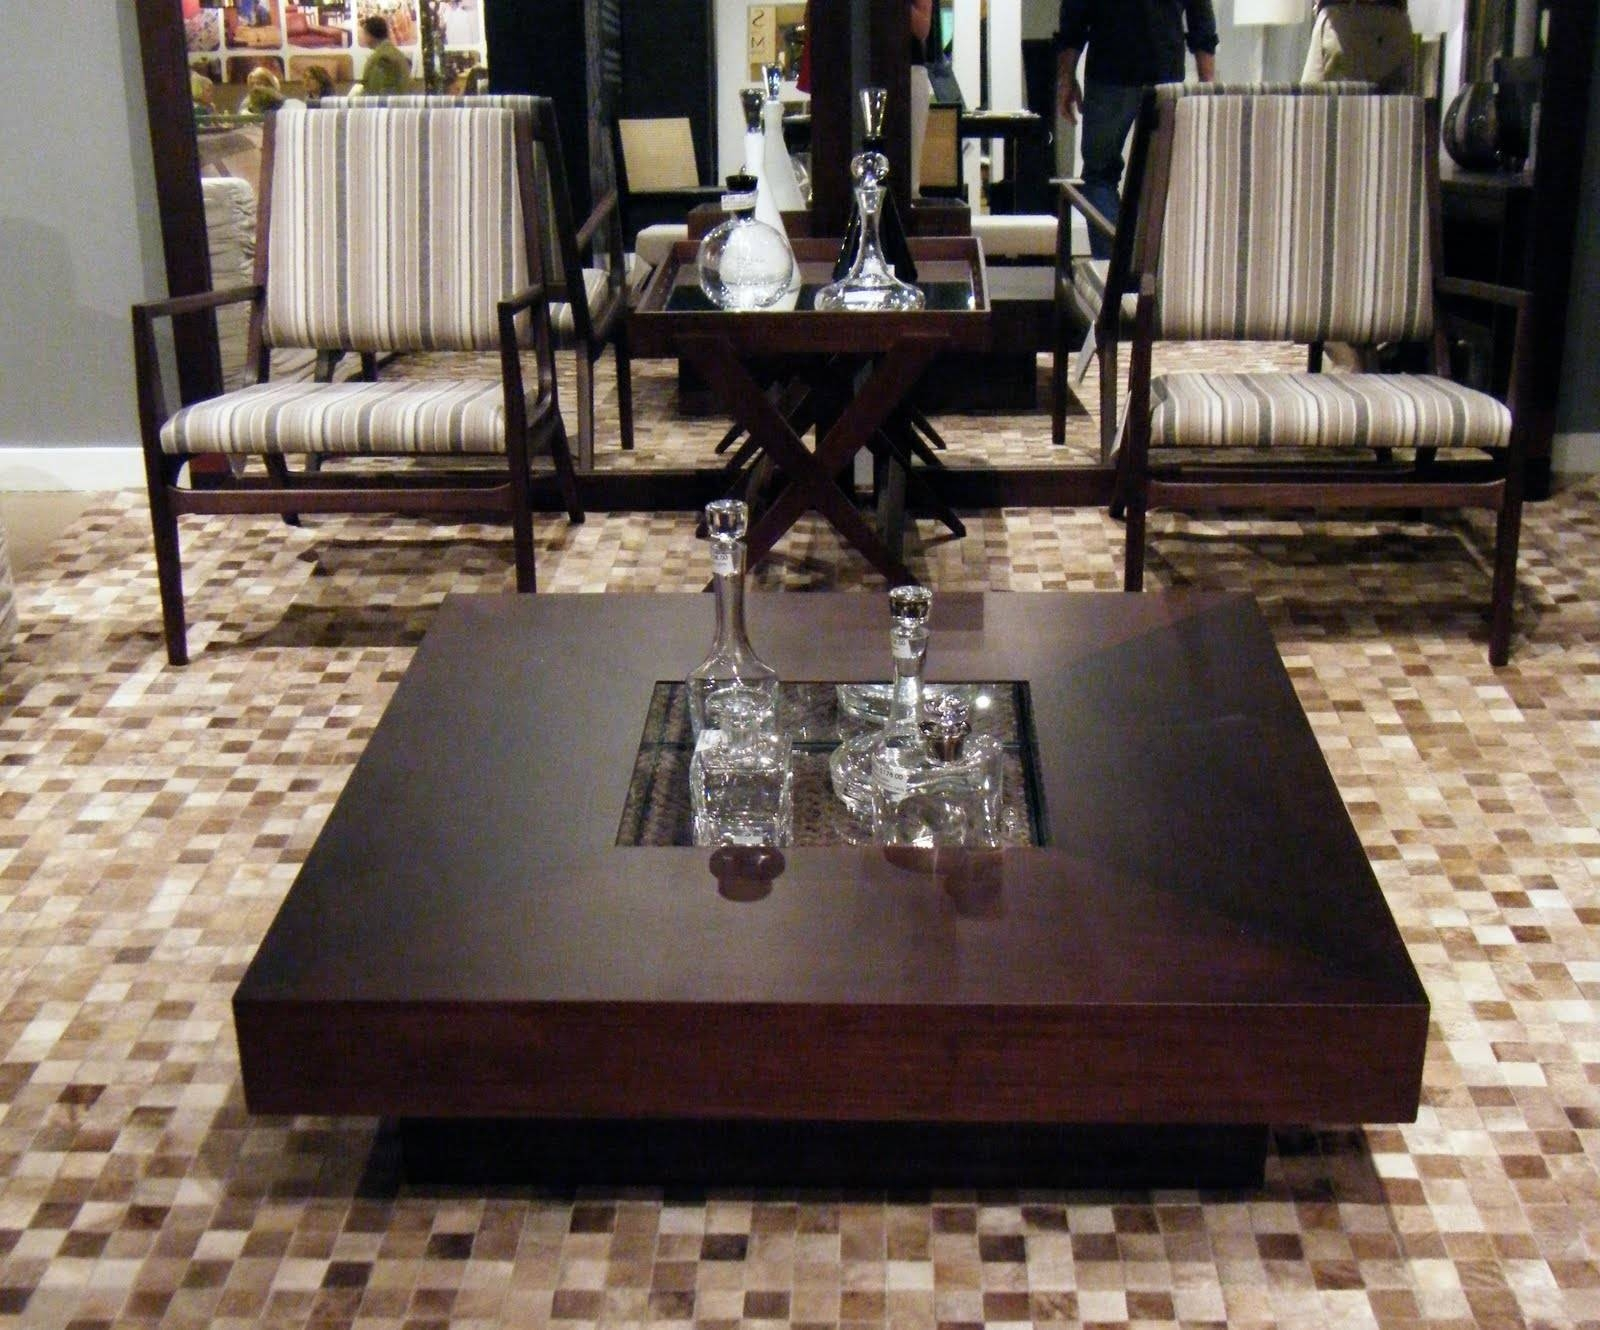 Modern Low Profile Coffee Tables | Coffee Tables Decoration intended for Low Square Coffee Tables (Image 24 of 30)